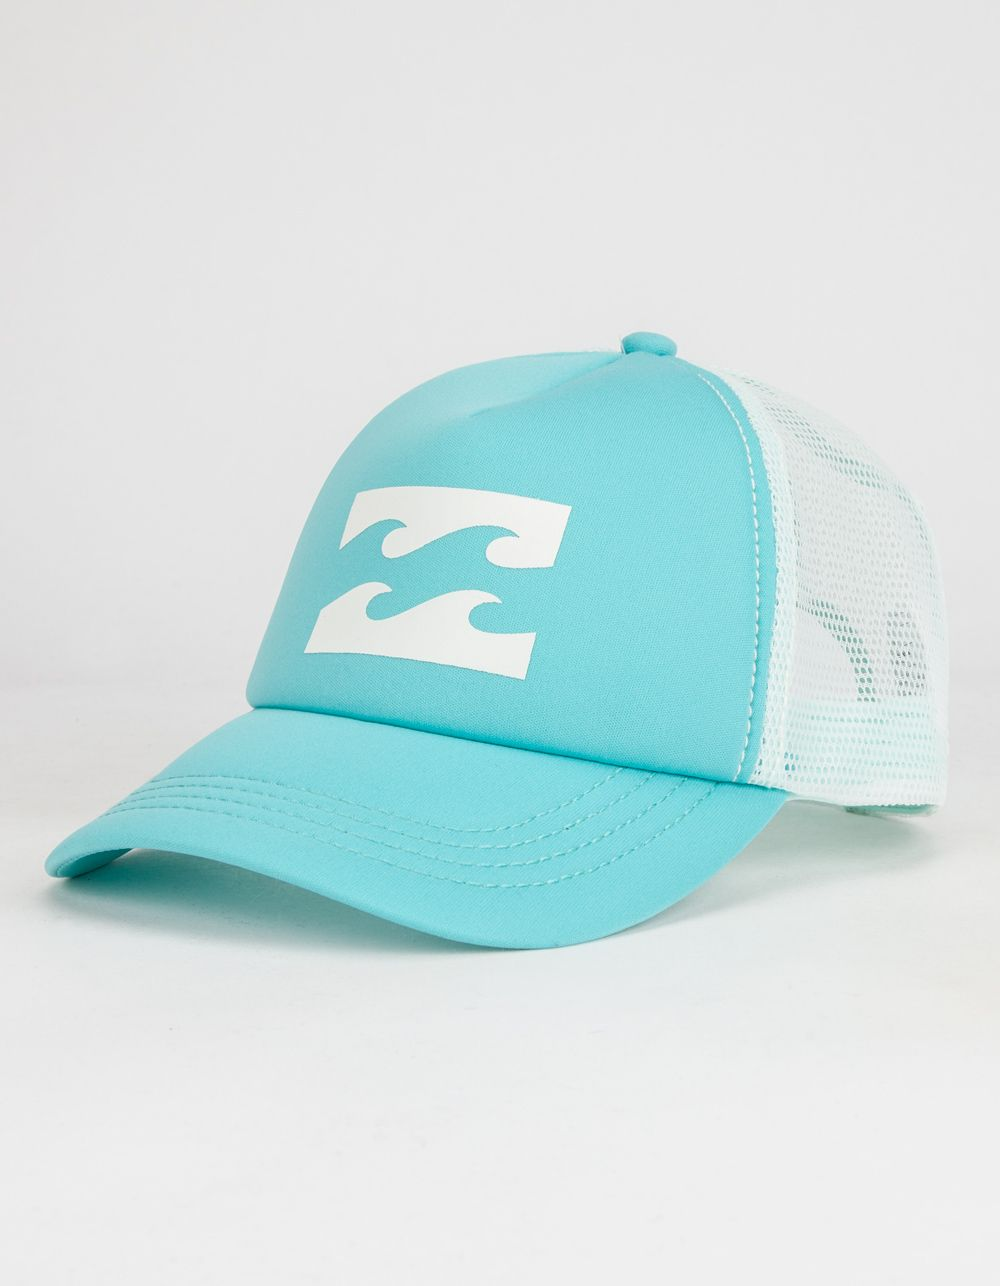 Billabong trucker hat. Quiksilver logo graphic screened on foamy front  panel. Mesh back. Adjustable snapback with Billabong tag. 55% polyester 45%  nylon. 9d6db73b679